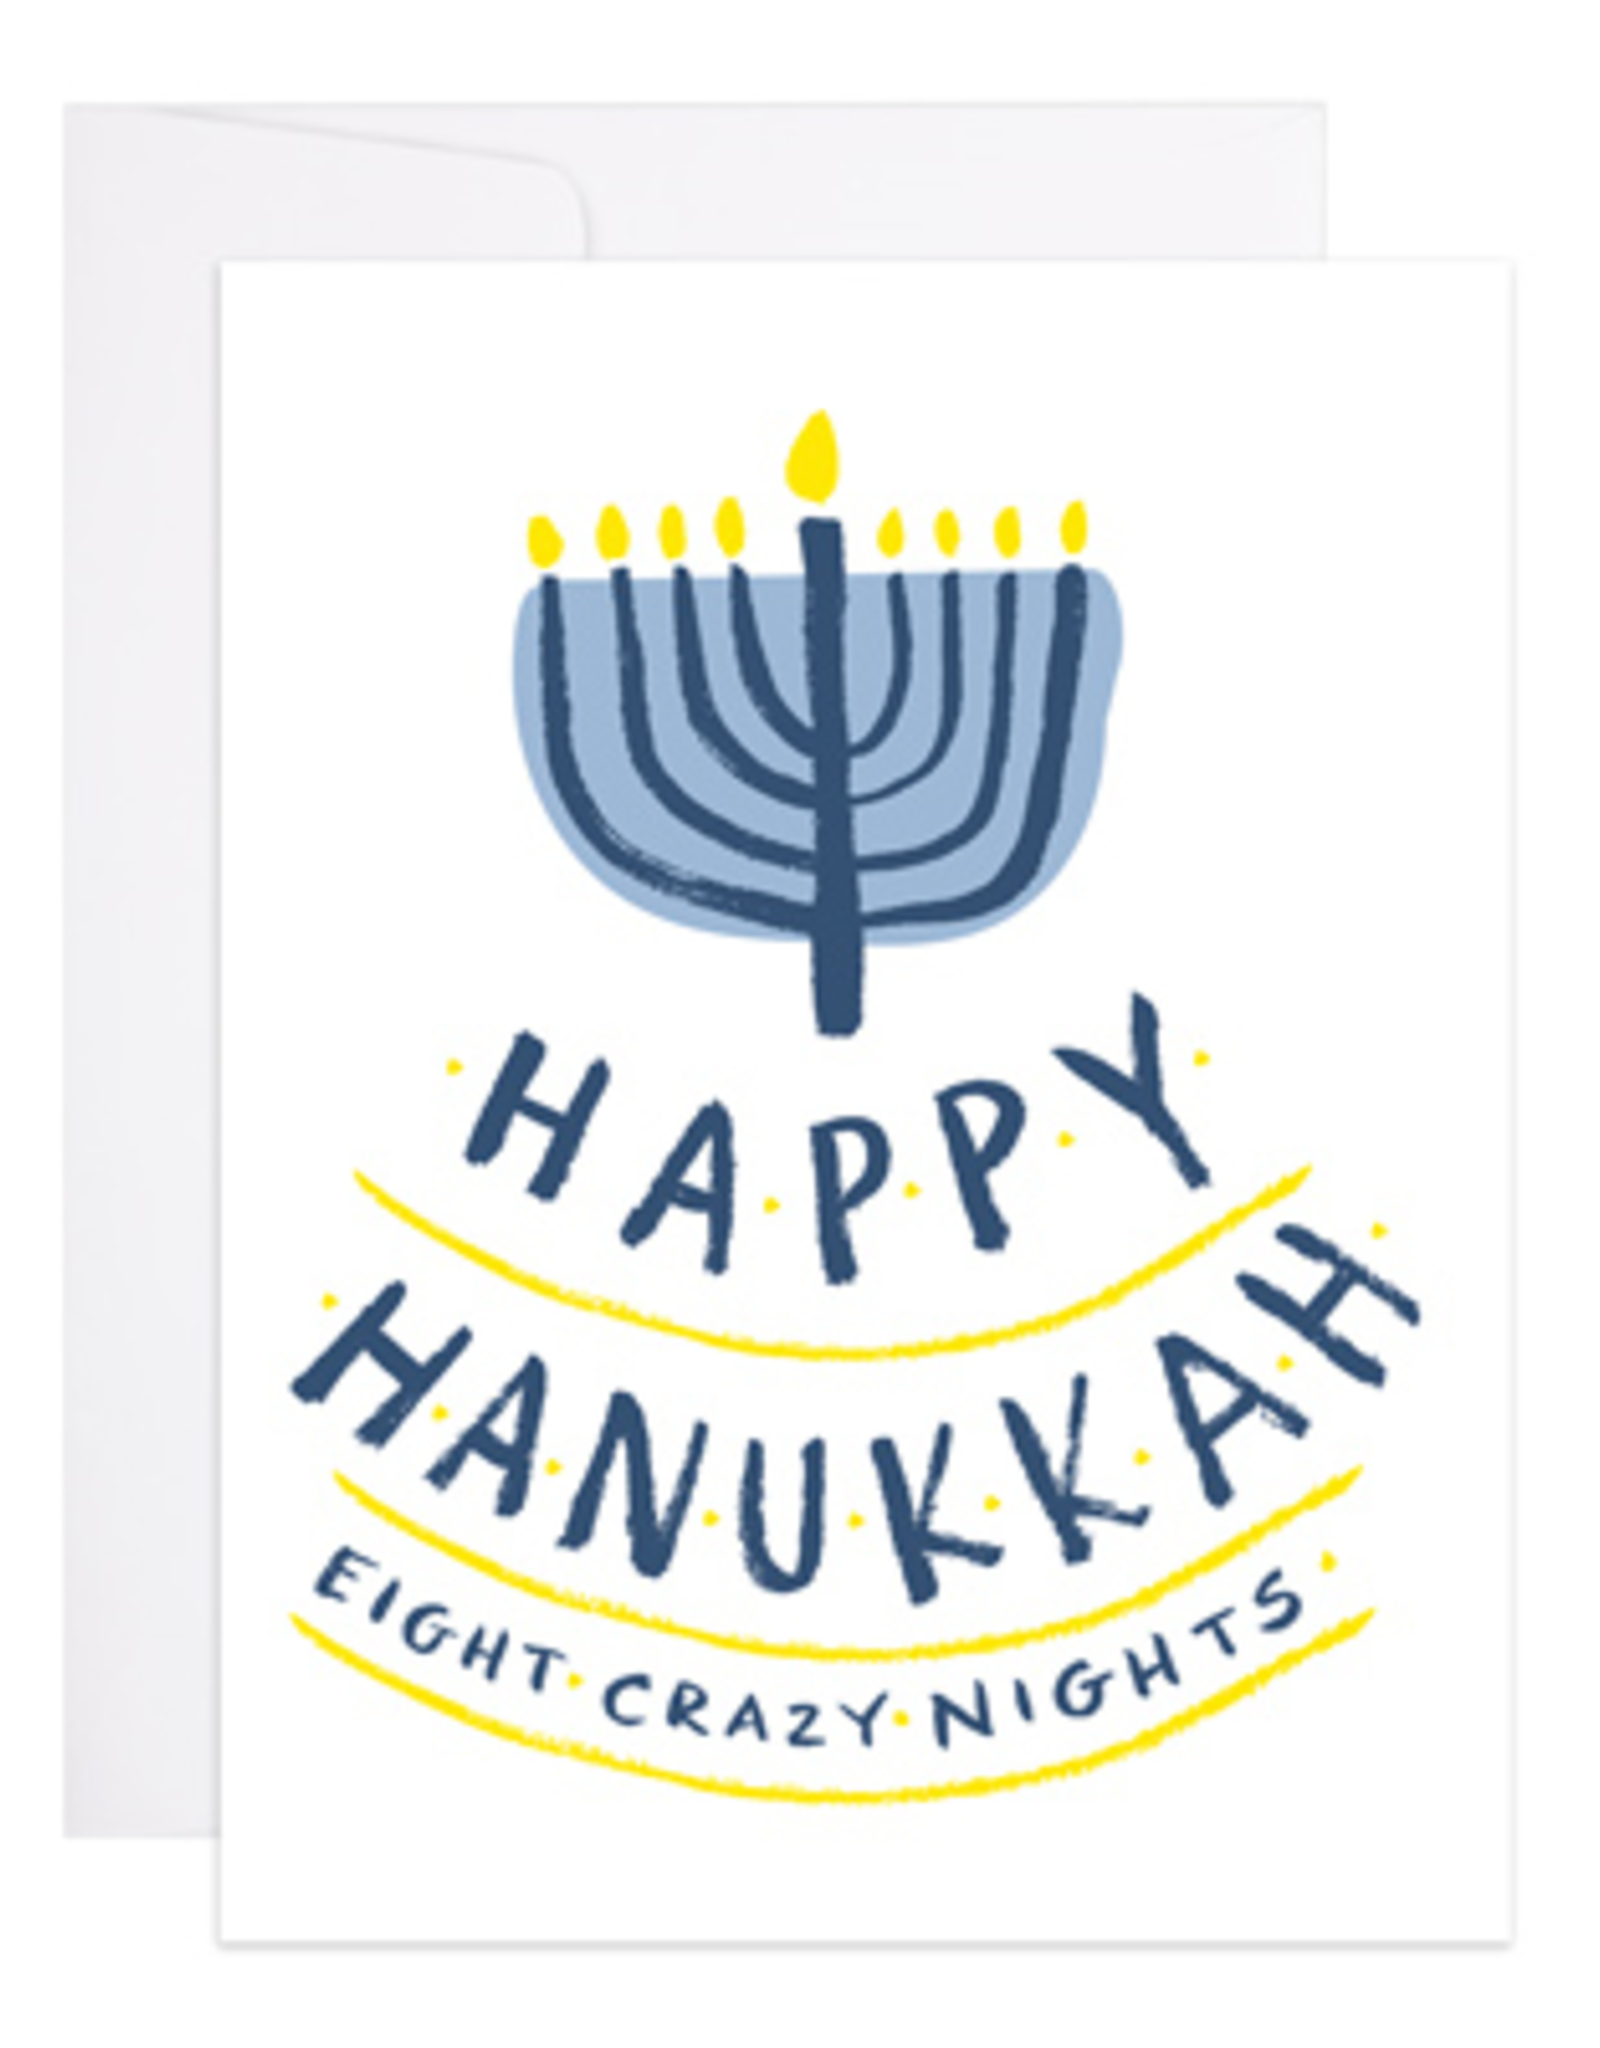 Happy Hanukkah Eight Crazy Nights Greeting Card